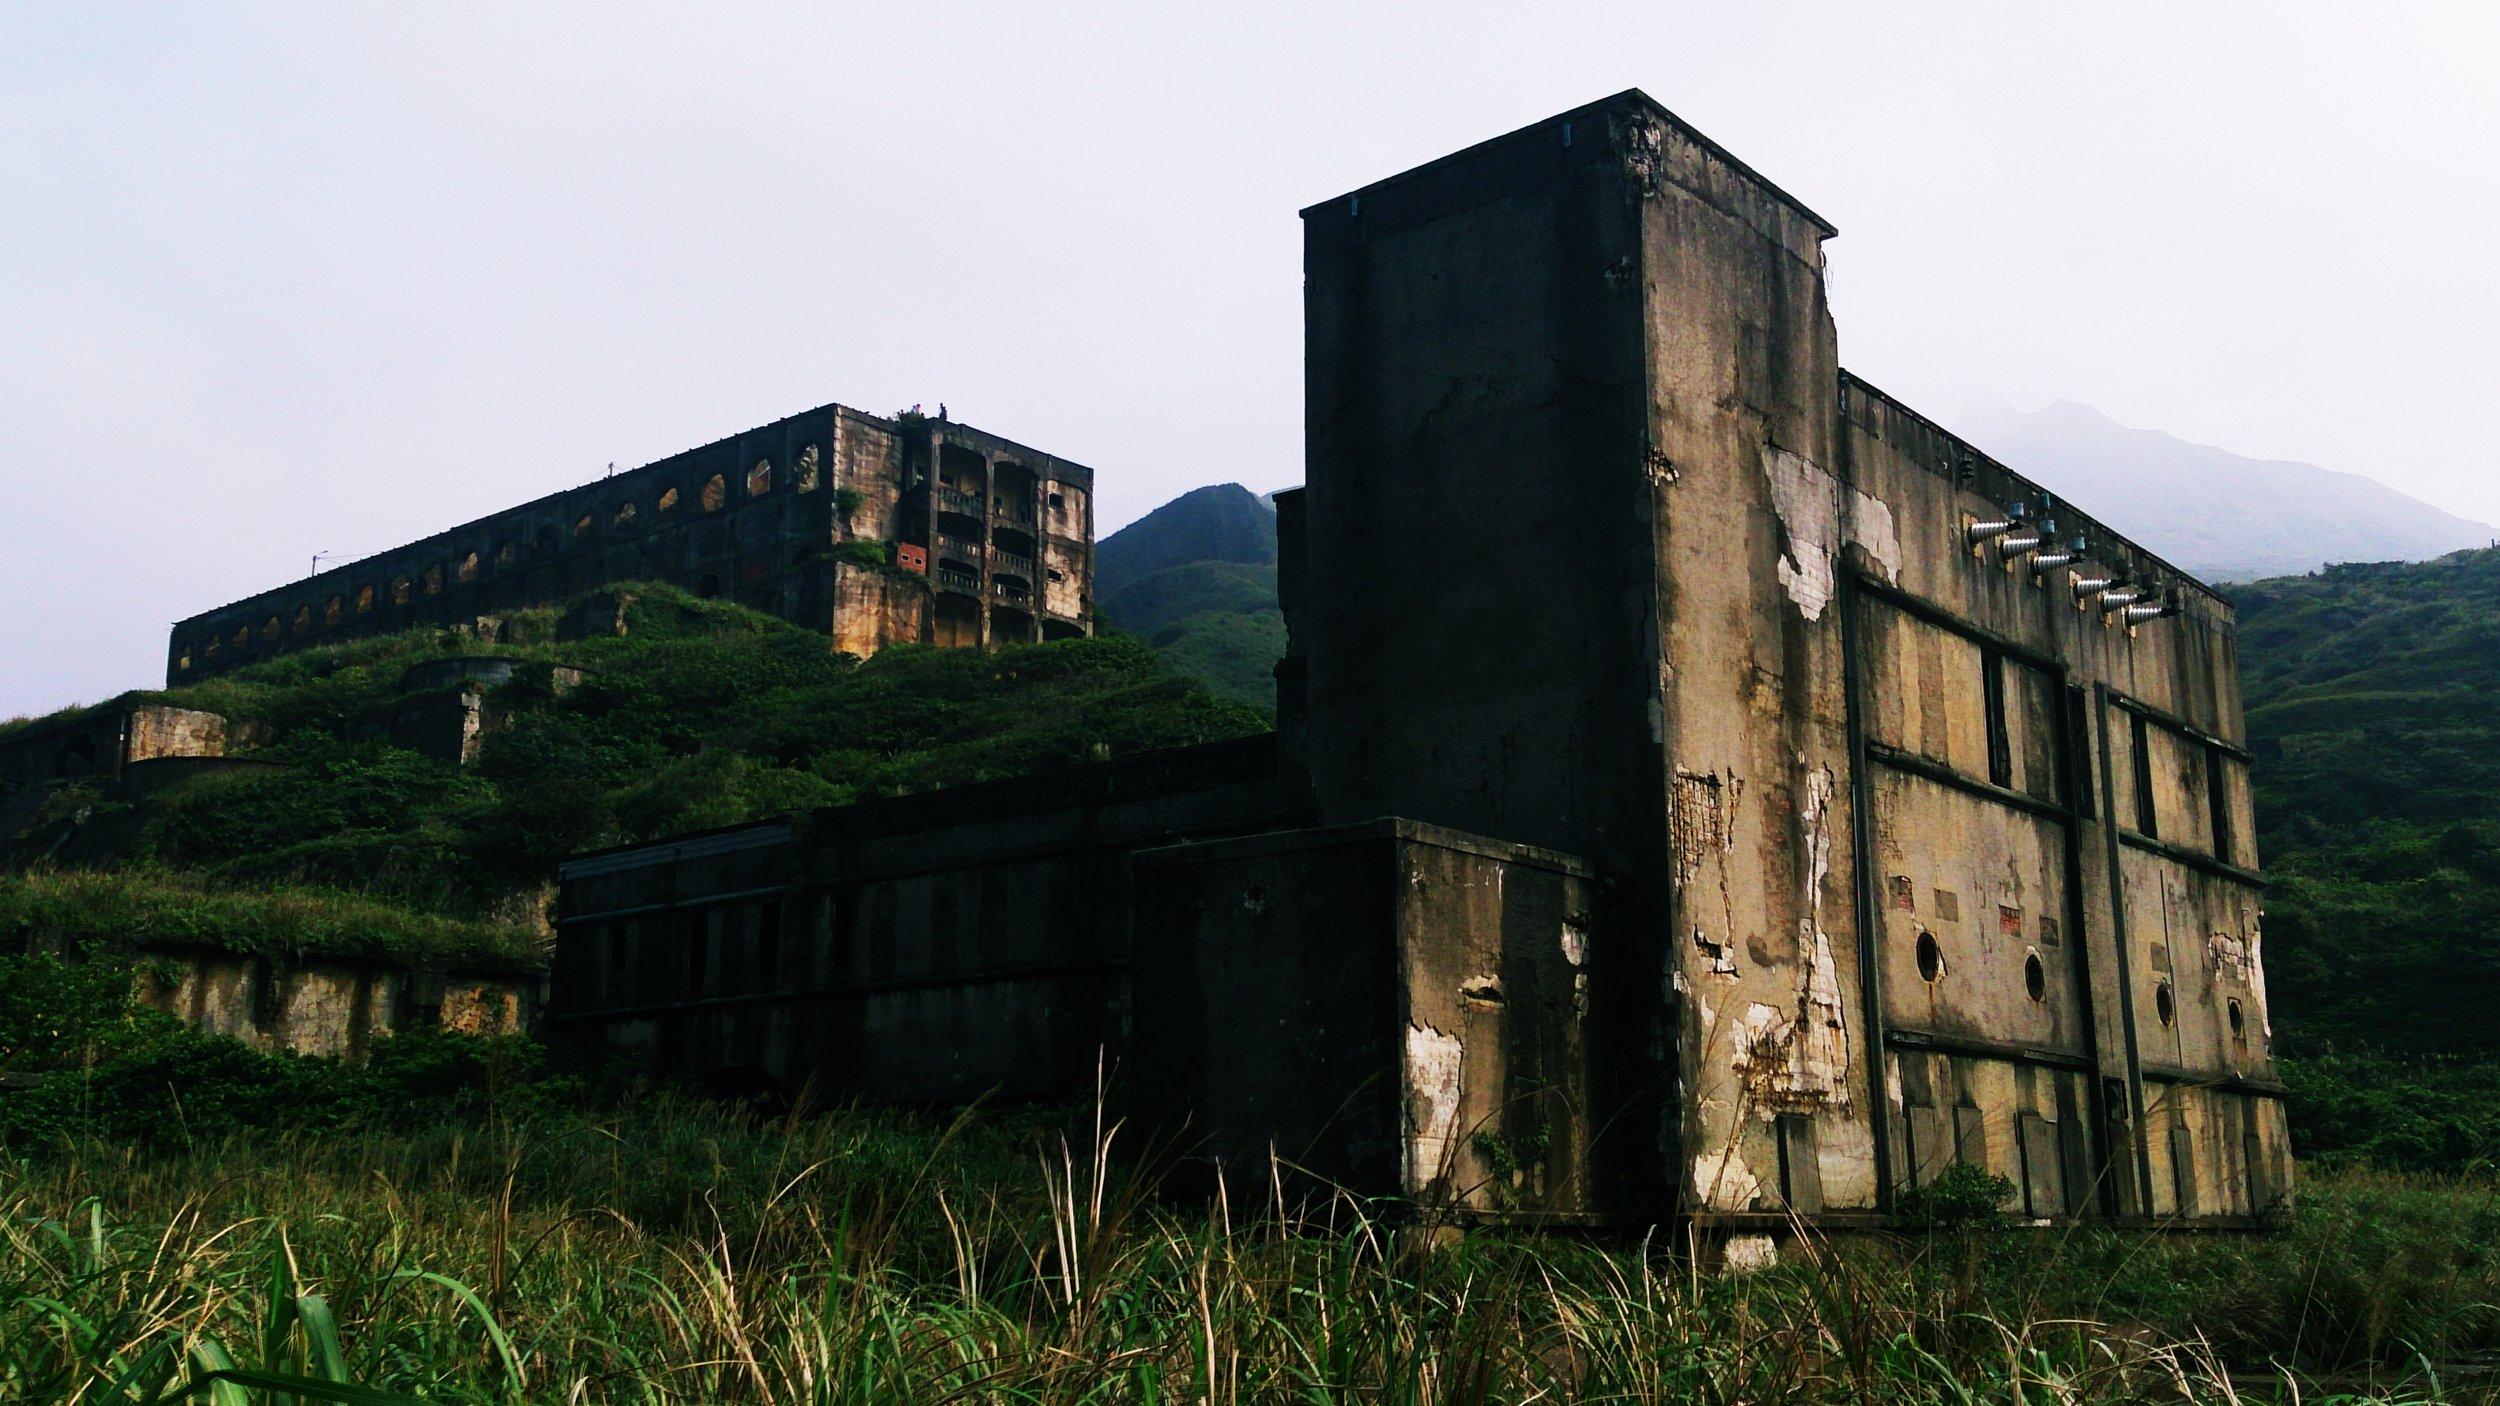 The ruins of Shuinandong Smelter  which I explored and wrote about here